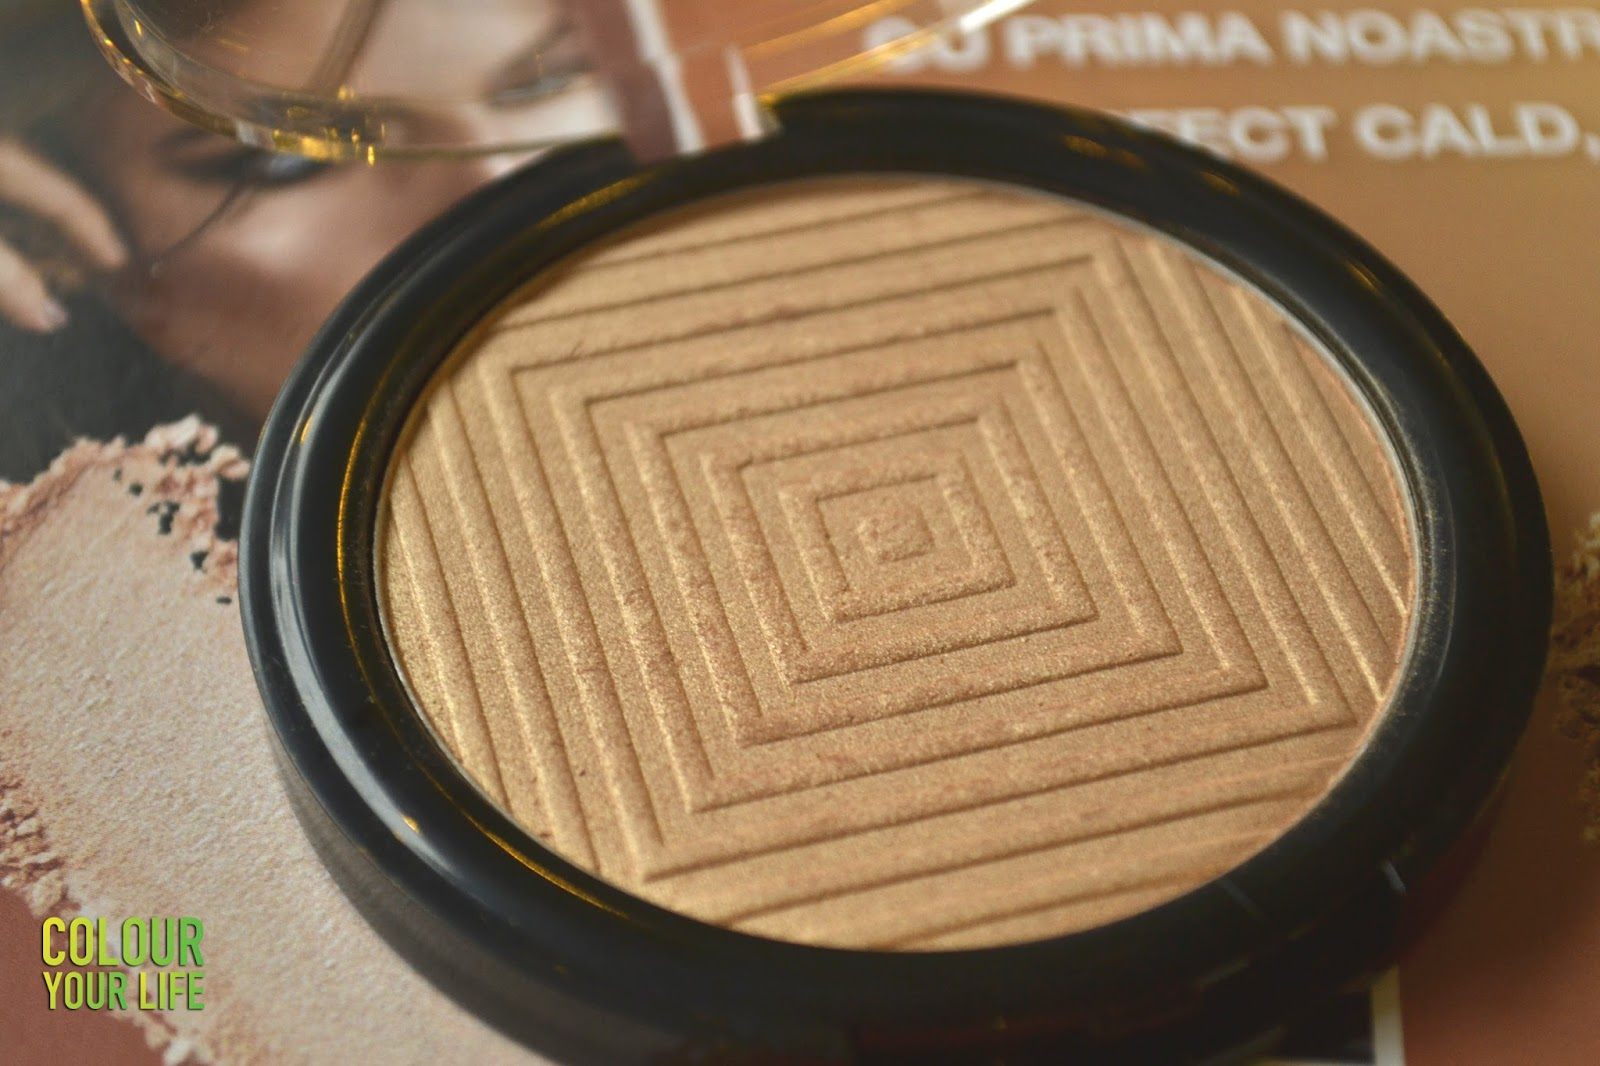 Colour Your Life On Feedspot Rss Feed La Girl Pro Face Hd Matte Pressed Powder Medium Biege 609 Me I Use This Highlighter Almost Daily And Simply Love Its Peach Rose Gold Tone Must Admit It Will Be Hard To Find One That Top Ones